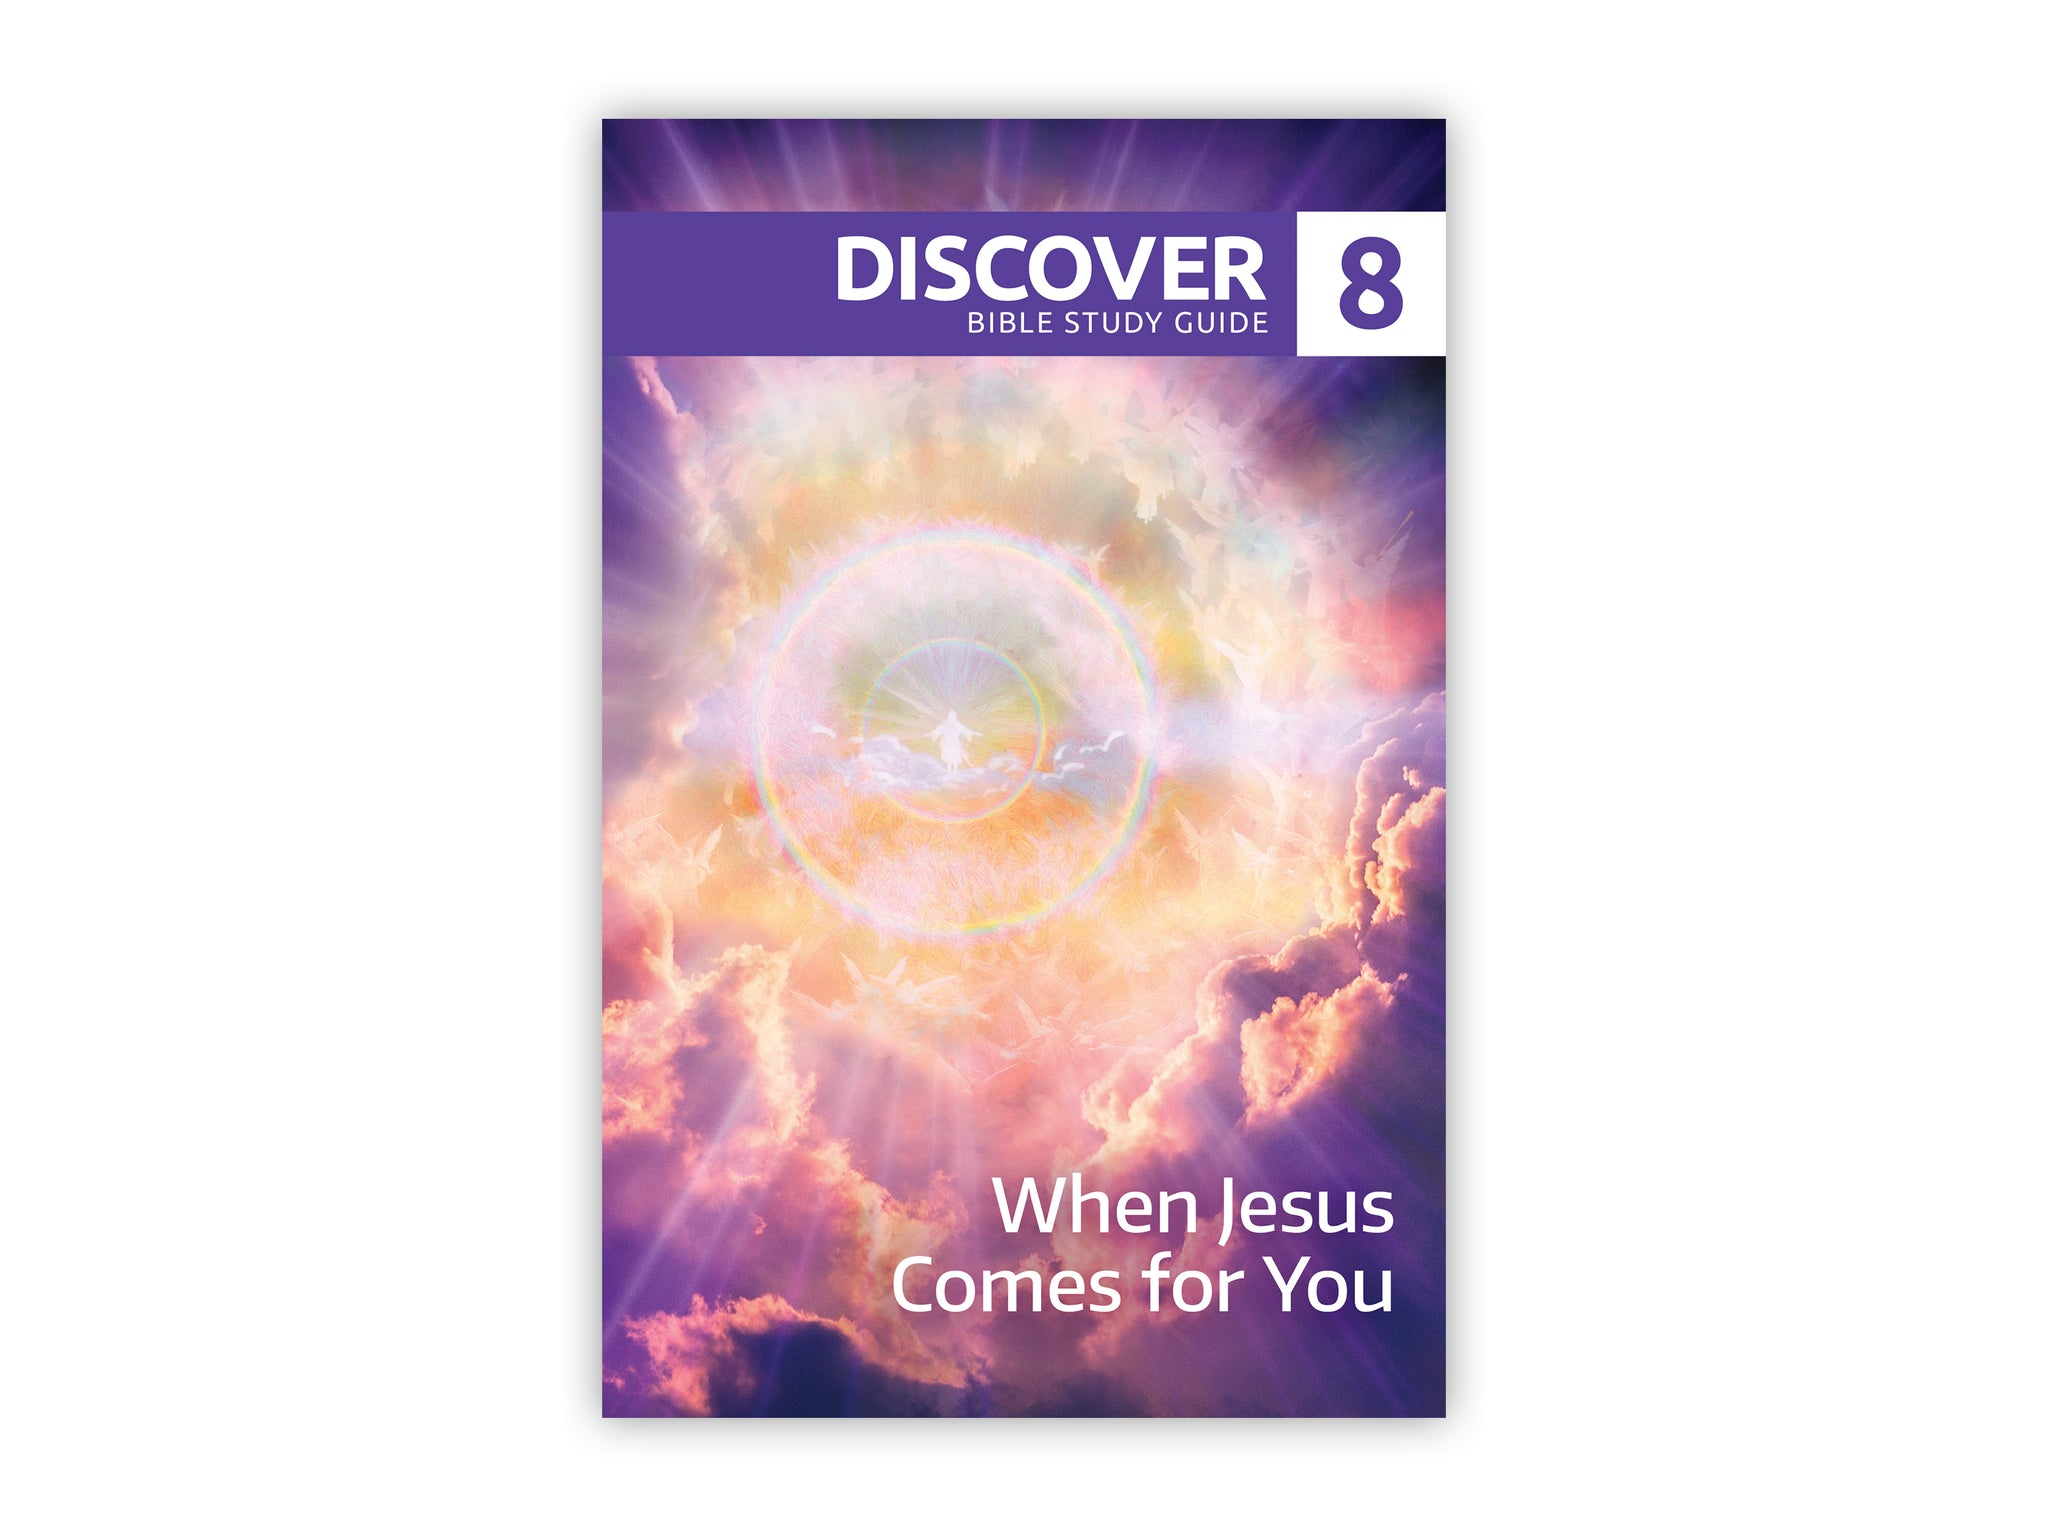 Discover Bible Study Guide #8 - When Jesus Comes for You